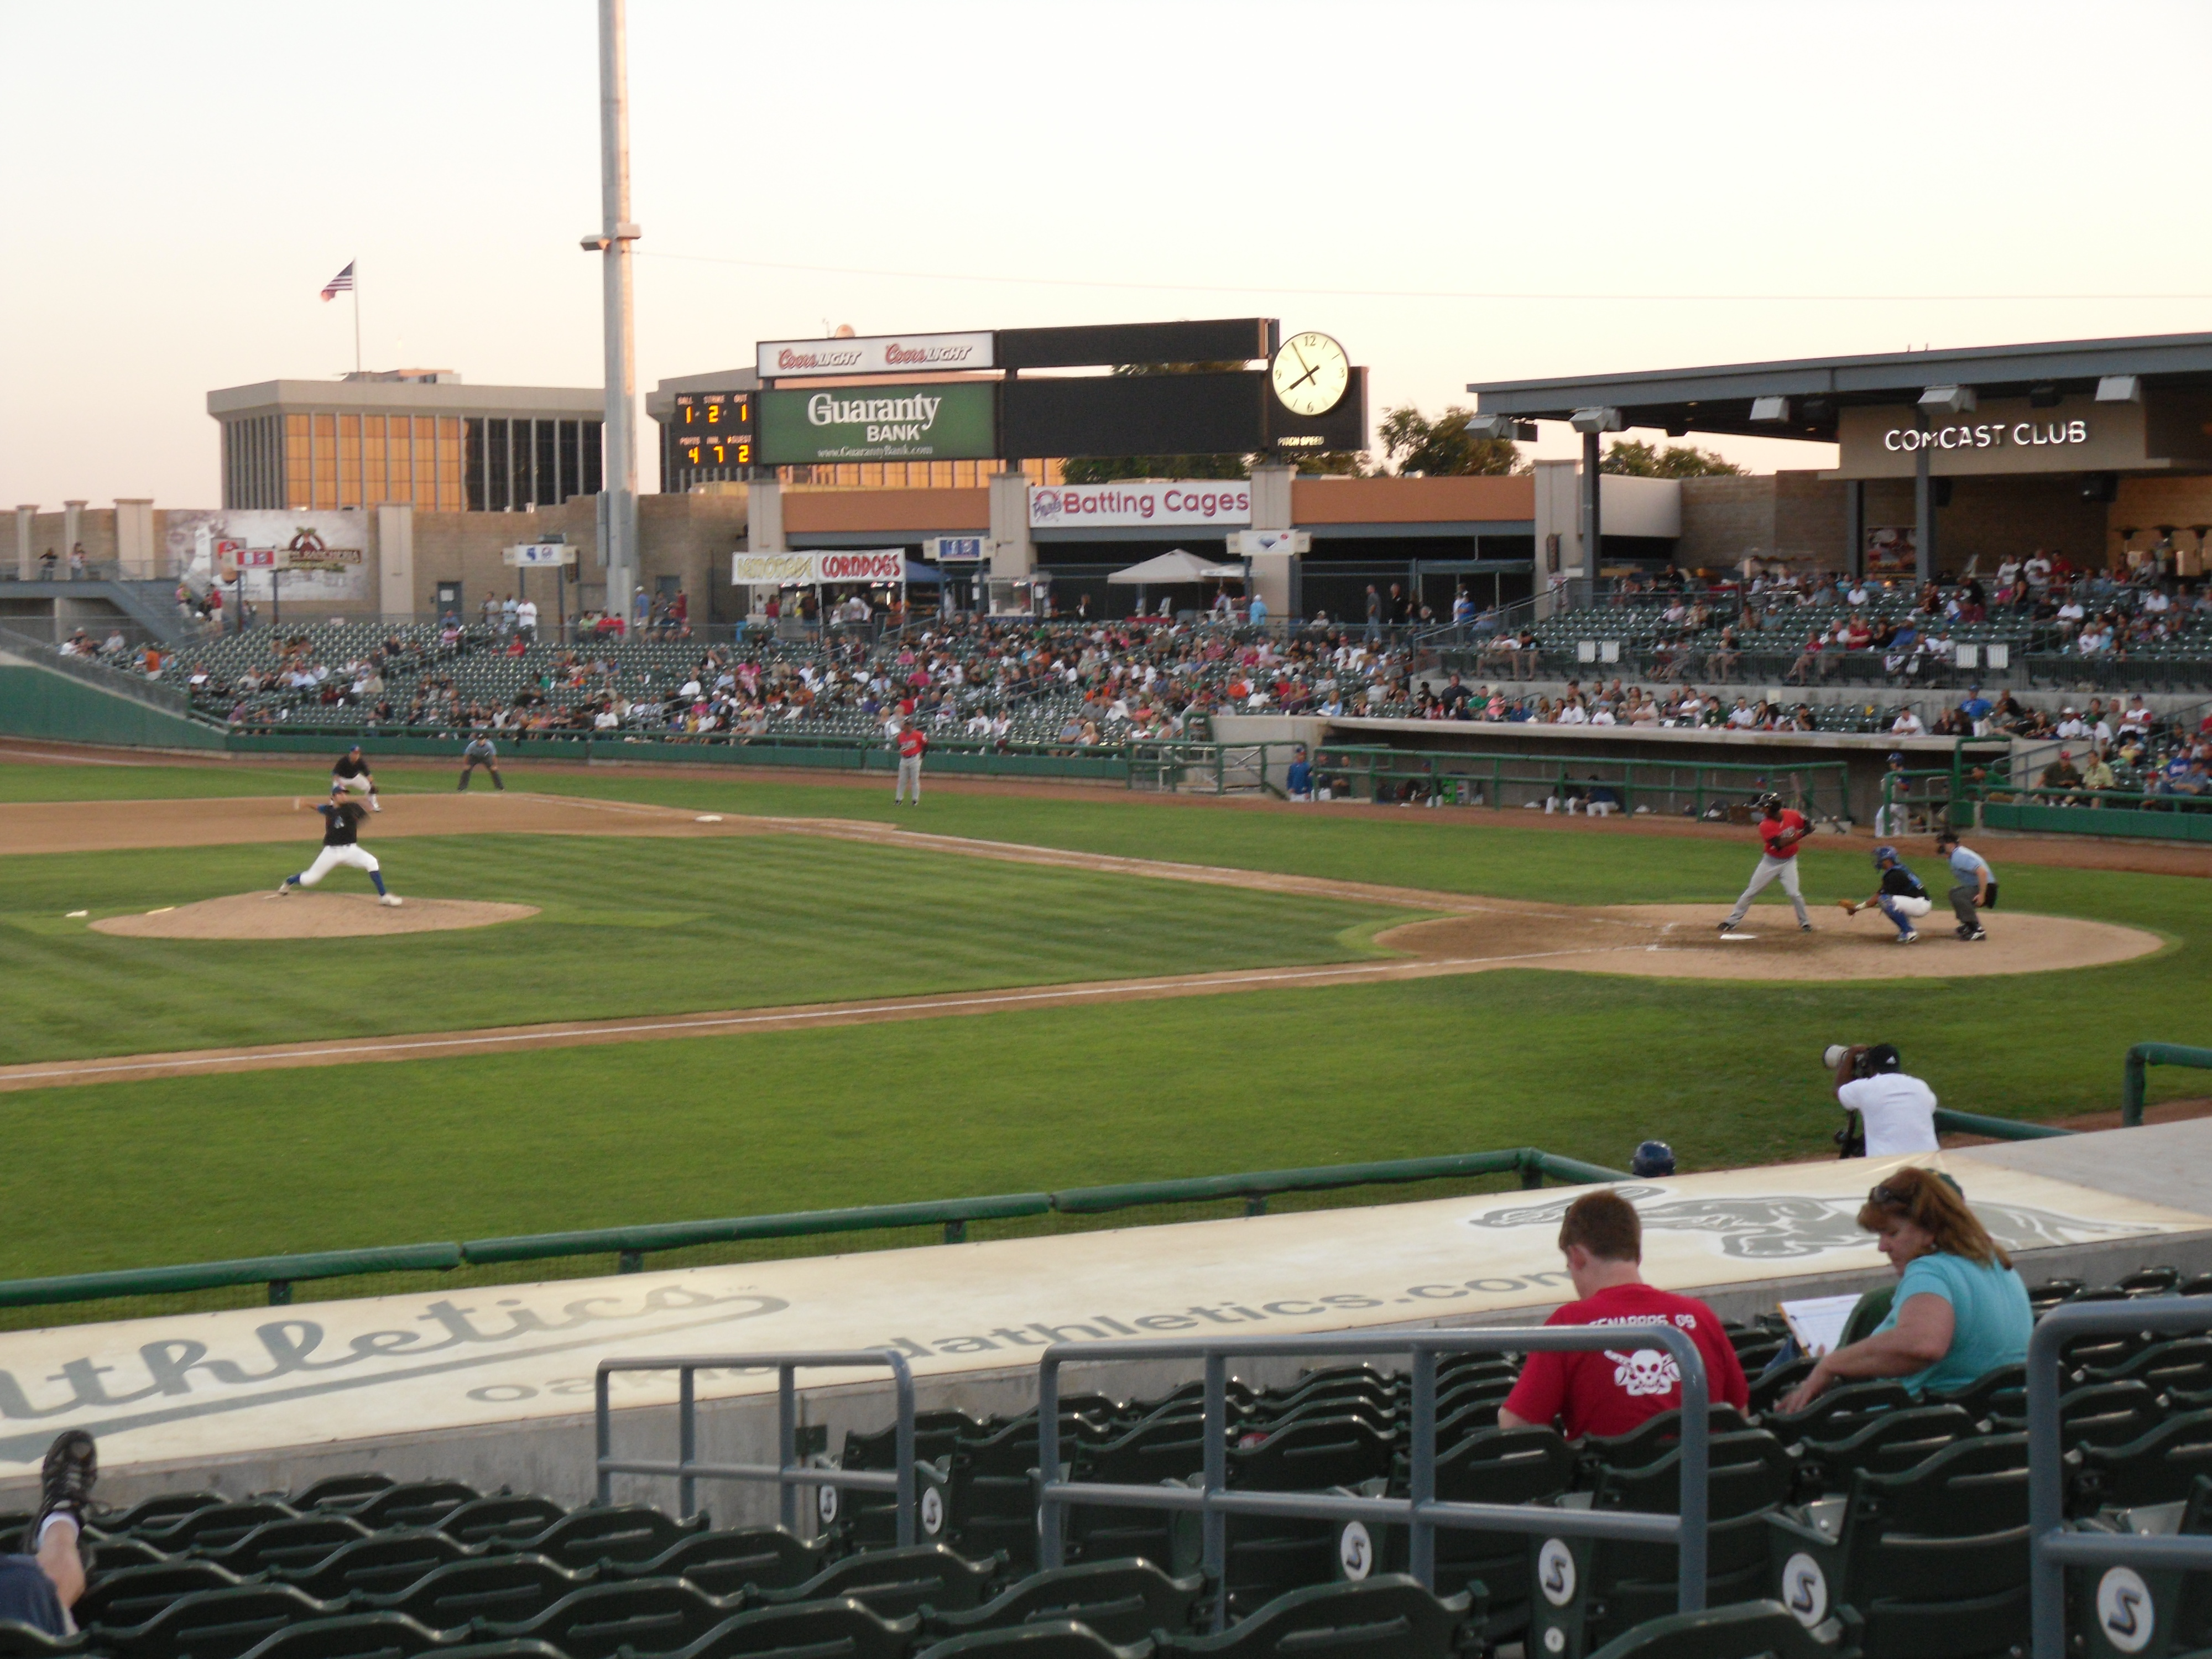 file:stockton ports gamedusk3 - wikimedia commons